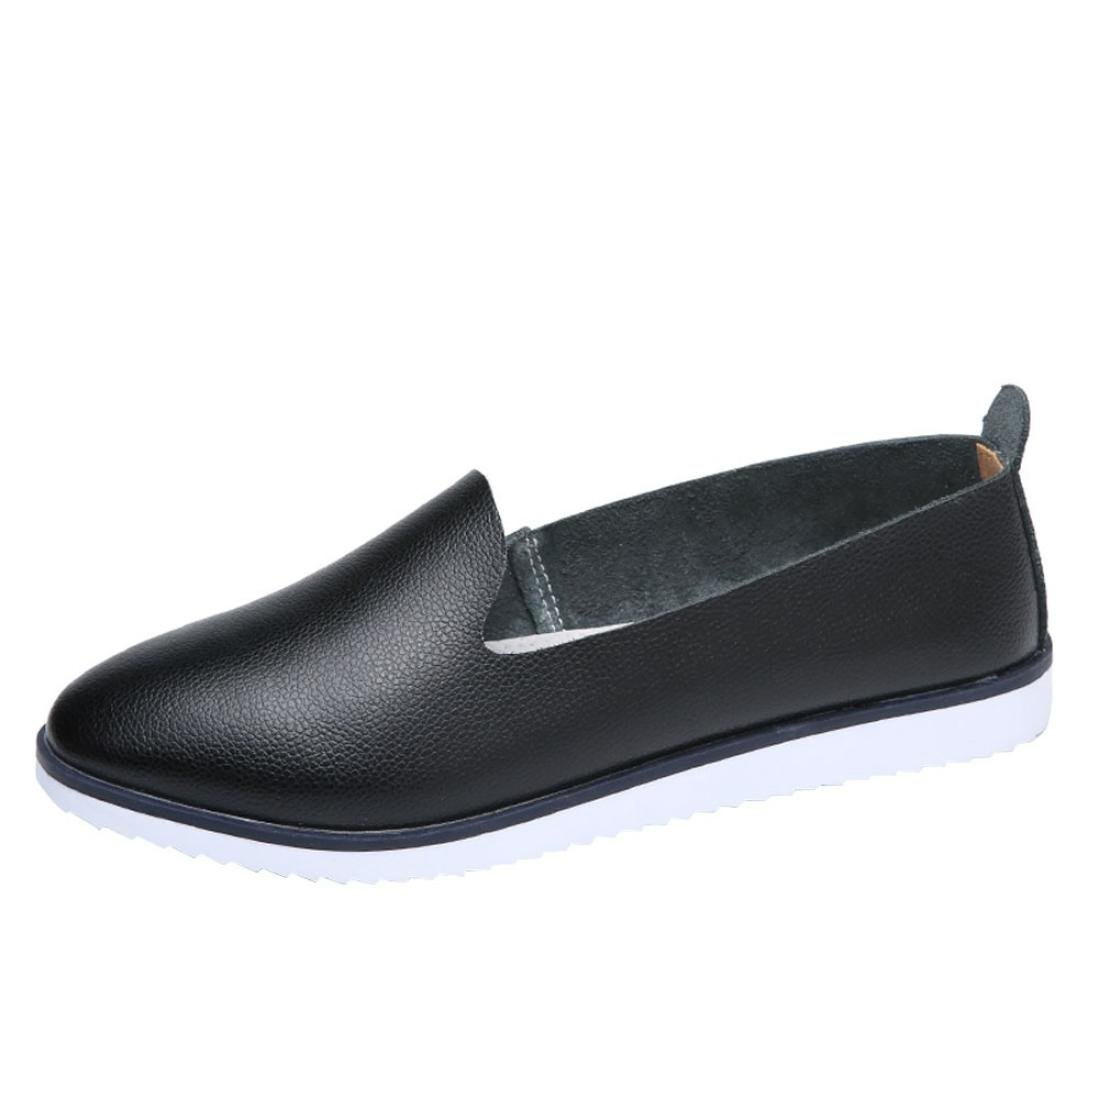 Neartime Promotion❤️Women Shoes, 2018 Fashion Flats Leather Shoes Shallow Slip On Leisure Lazy Comfortable Sandals